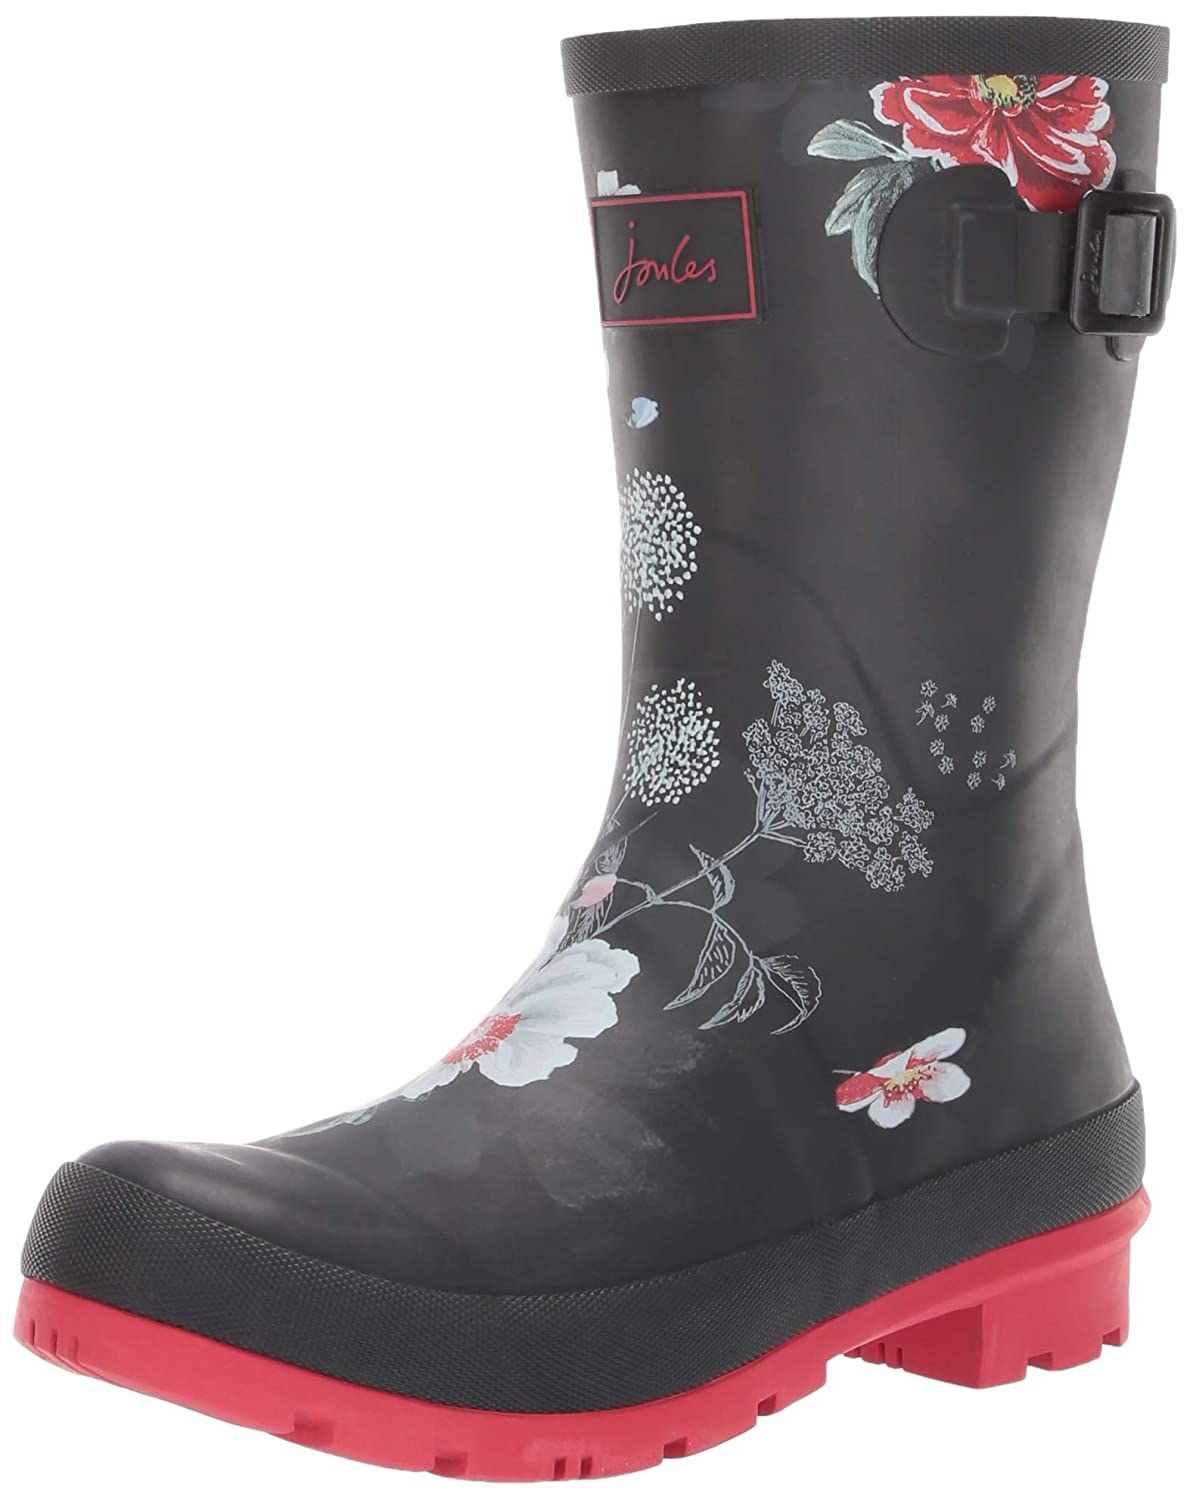 Black Floral Joules Women's Molly Welly Rain